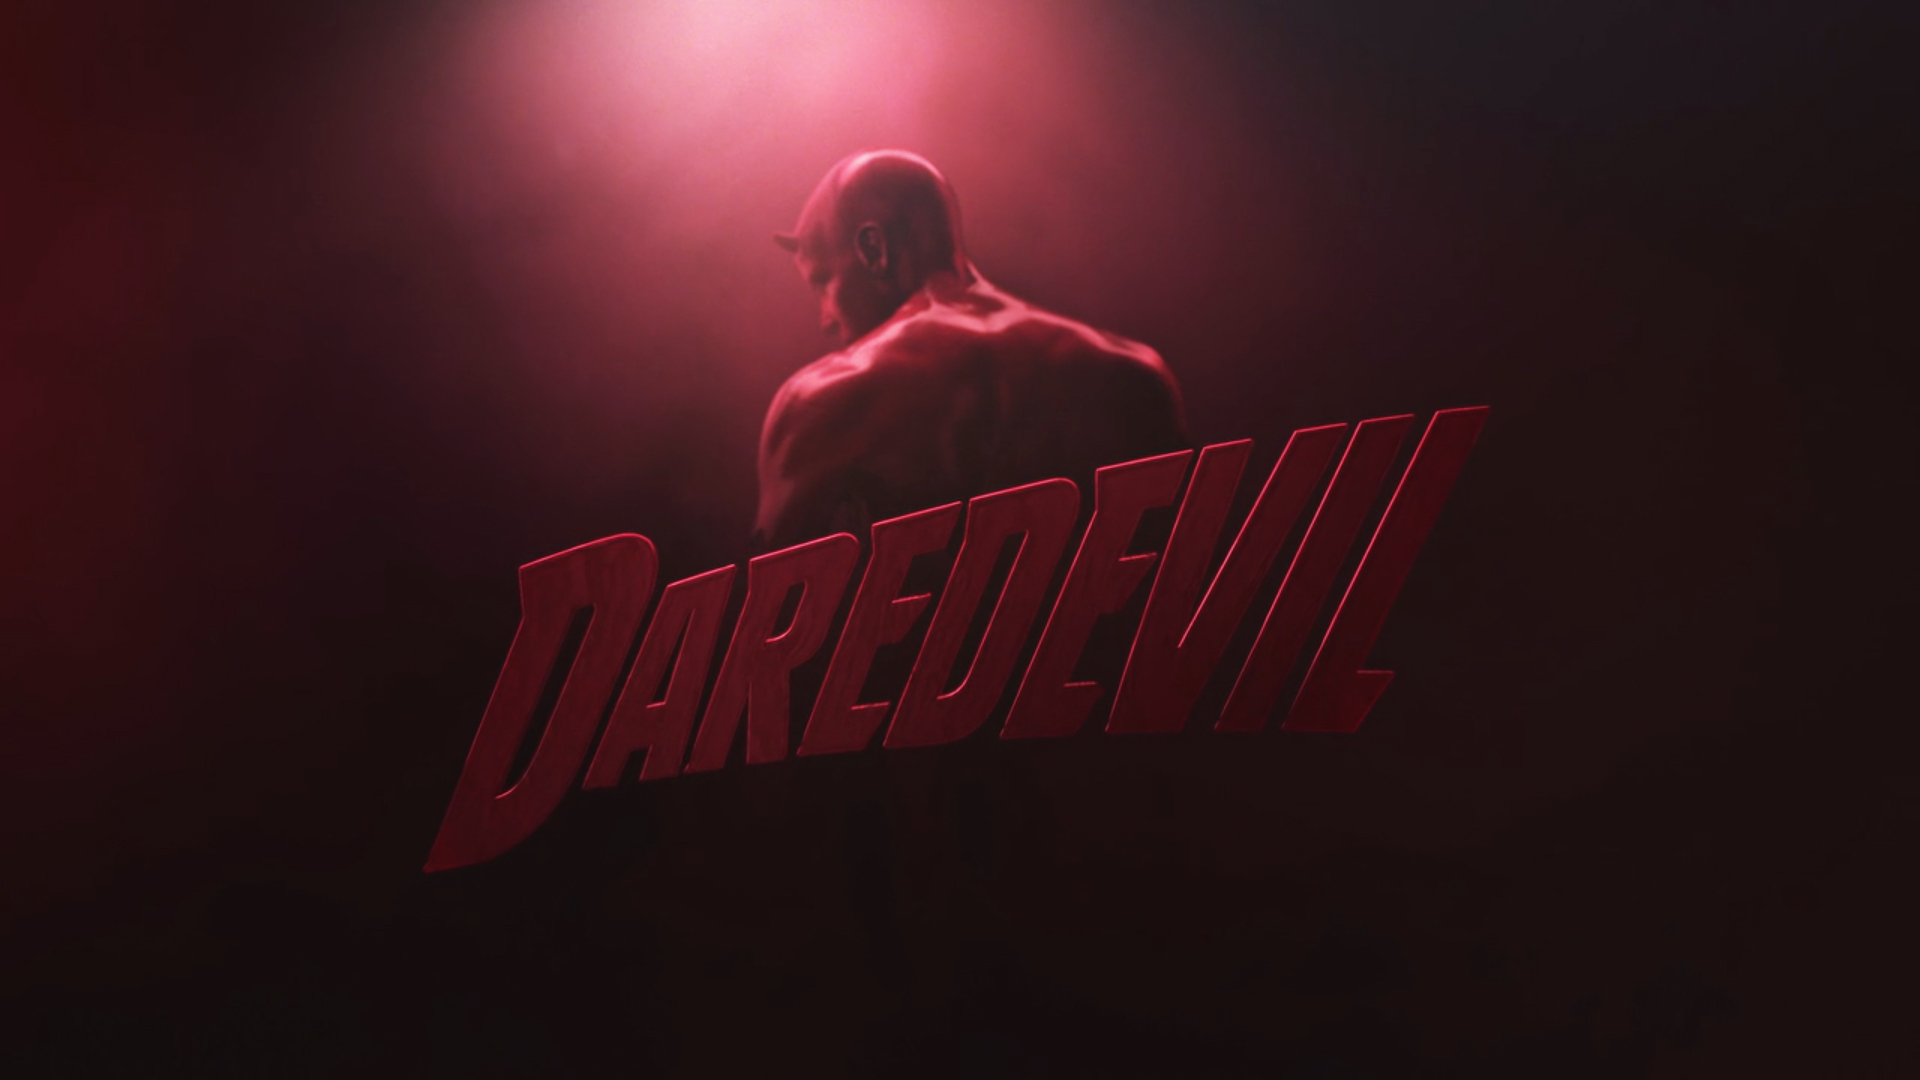 daredevil wallpaper in - photo #25